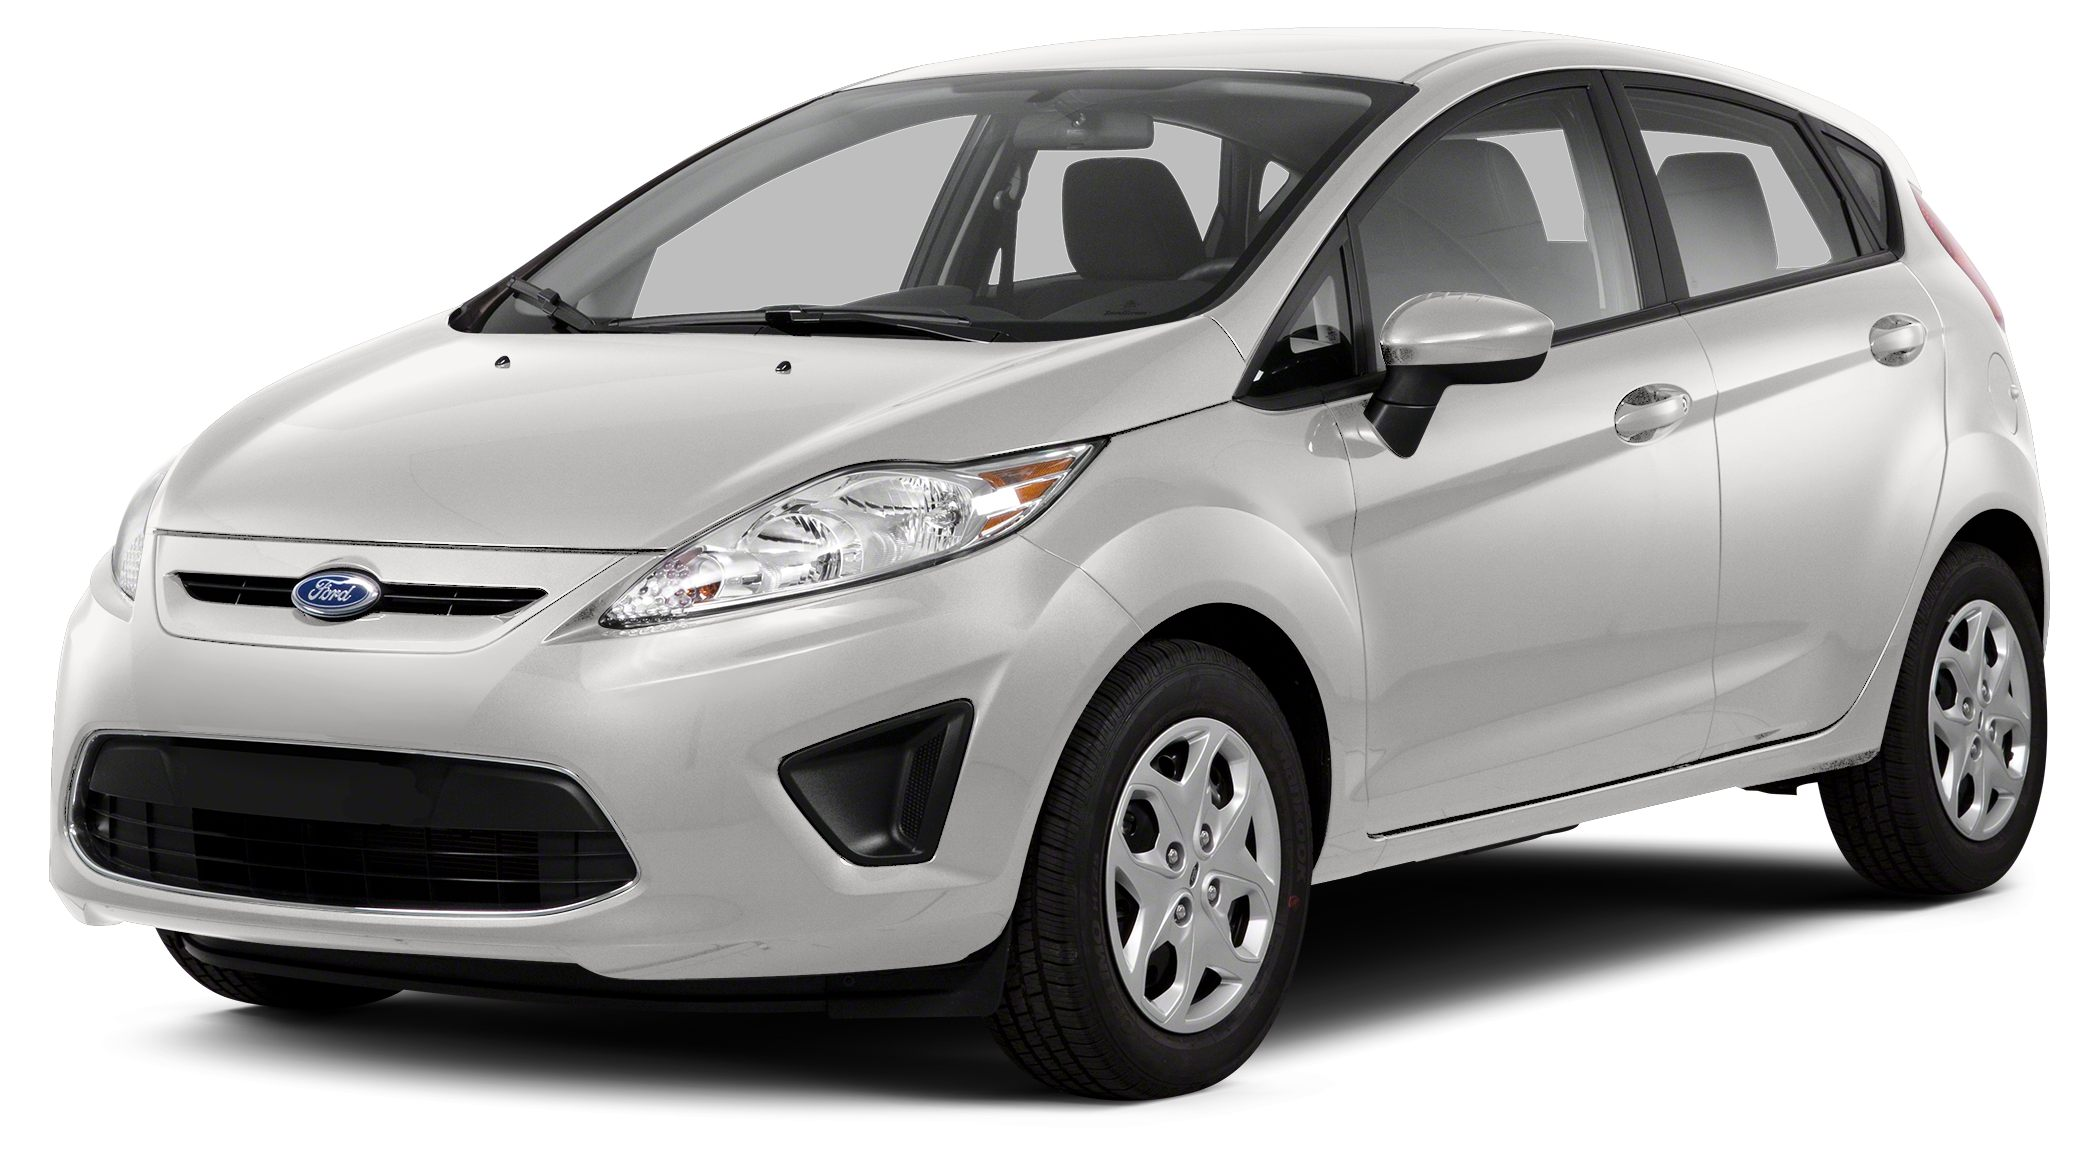 2013 Ford Fiesta SE Check out this 2013 Ford Fiesta SE It has a Manual transmission and a Gas I4